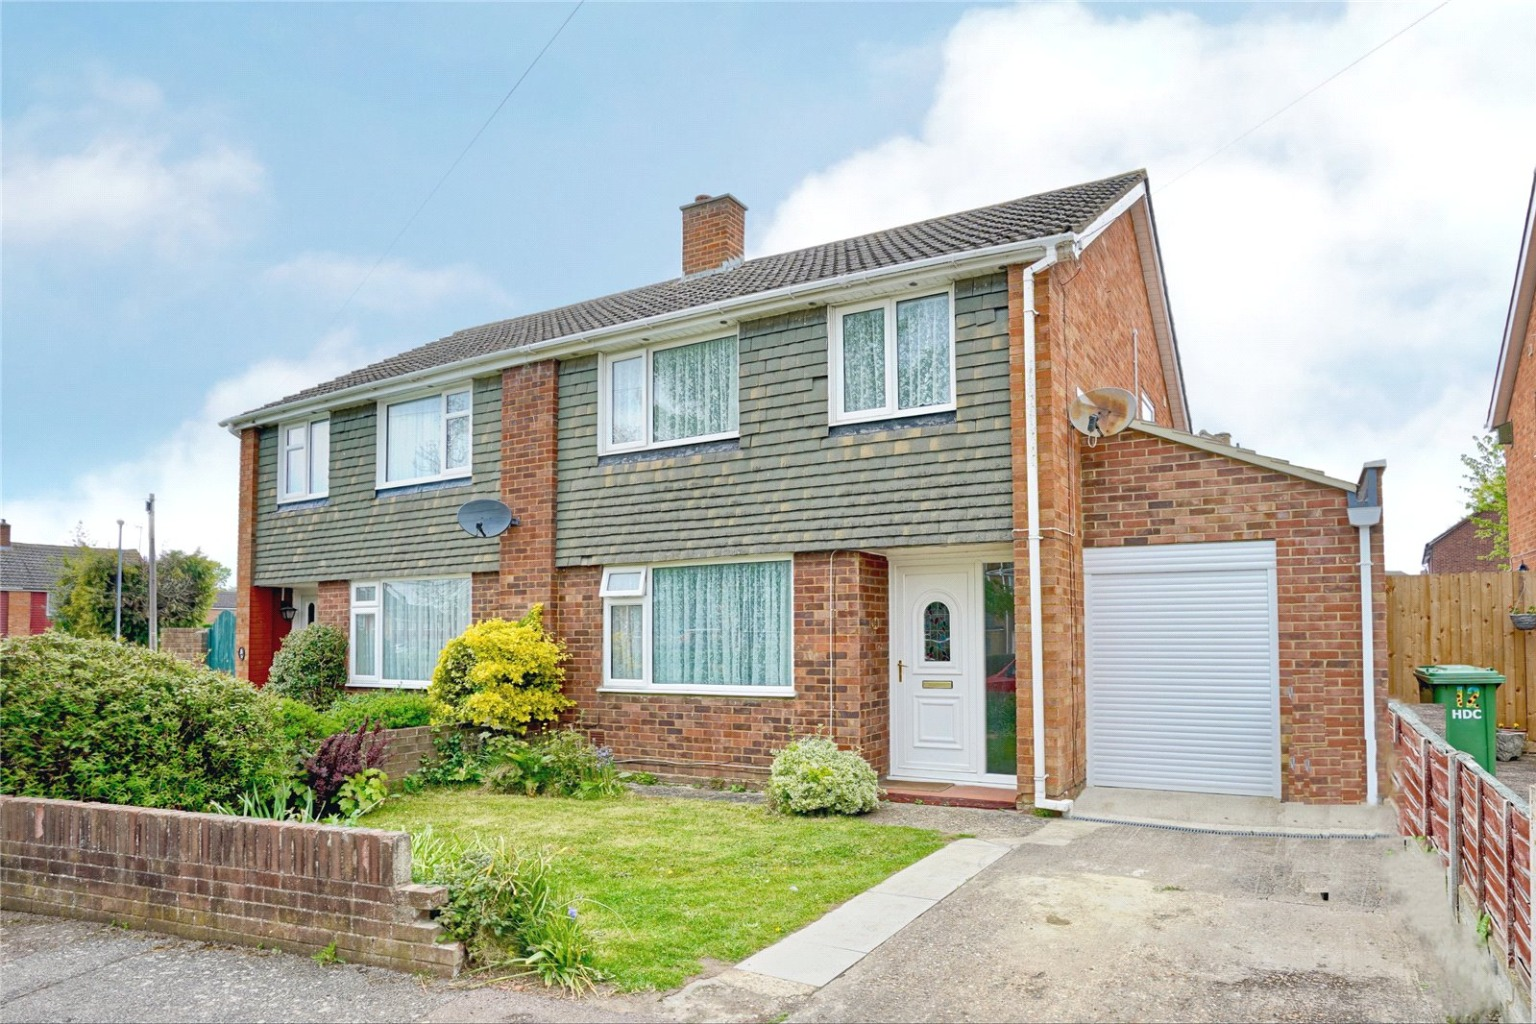 3 bed  for sale in Acacia Grove, St. Neots, PE19